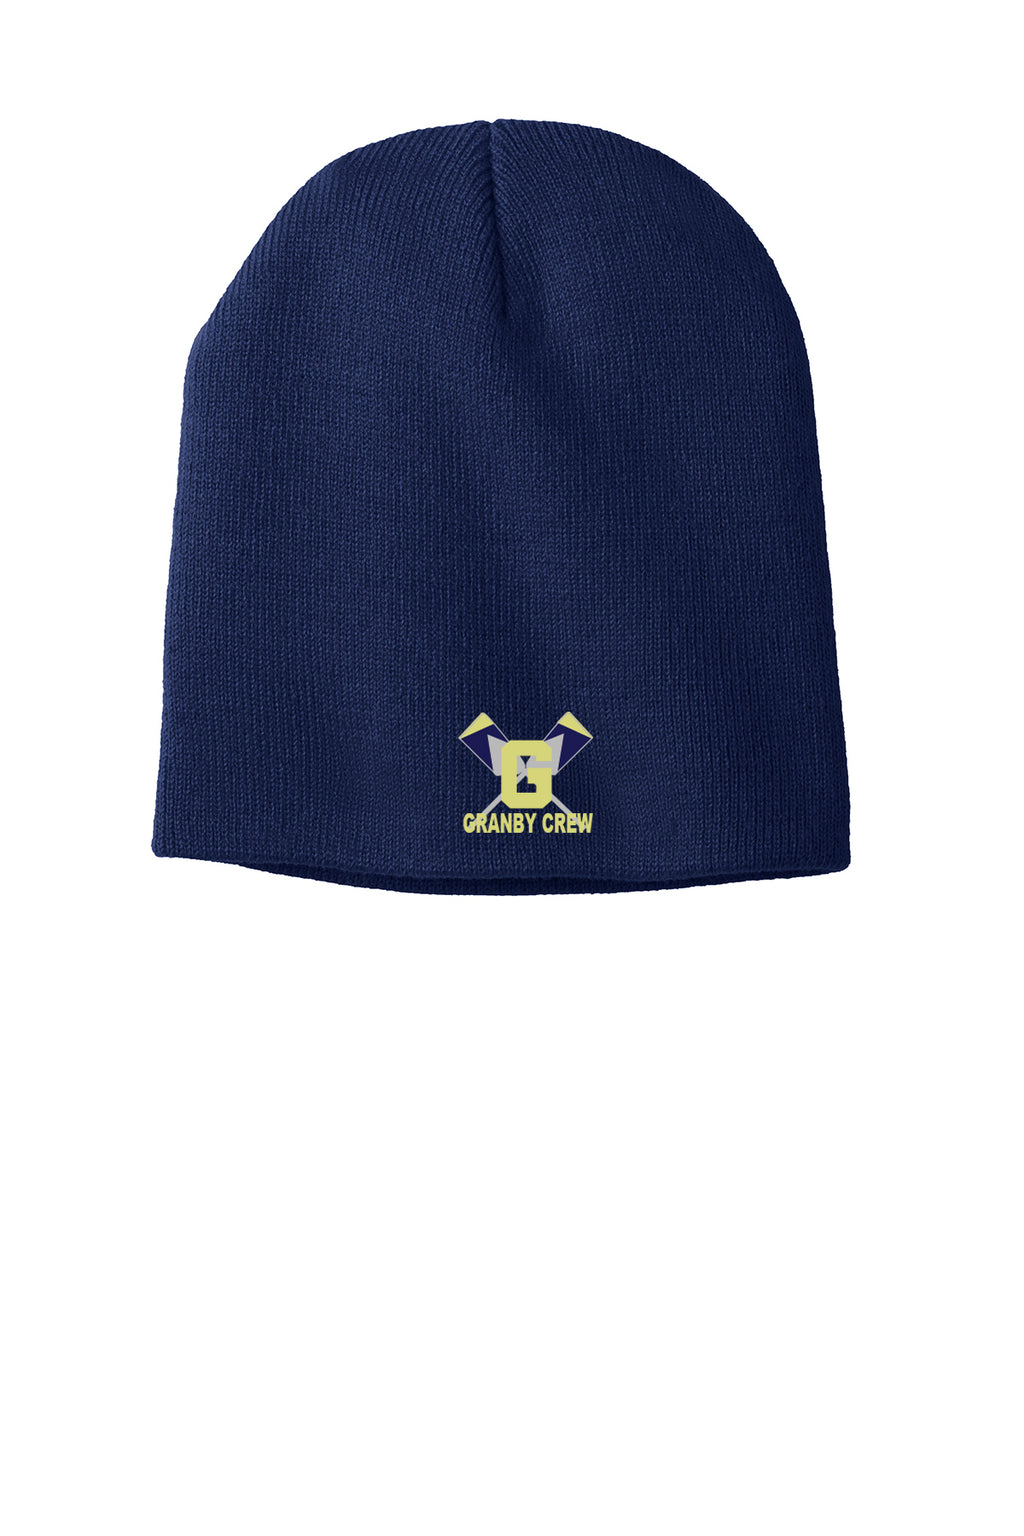 Straight Knit Granby Crew Beanie